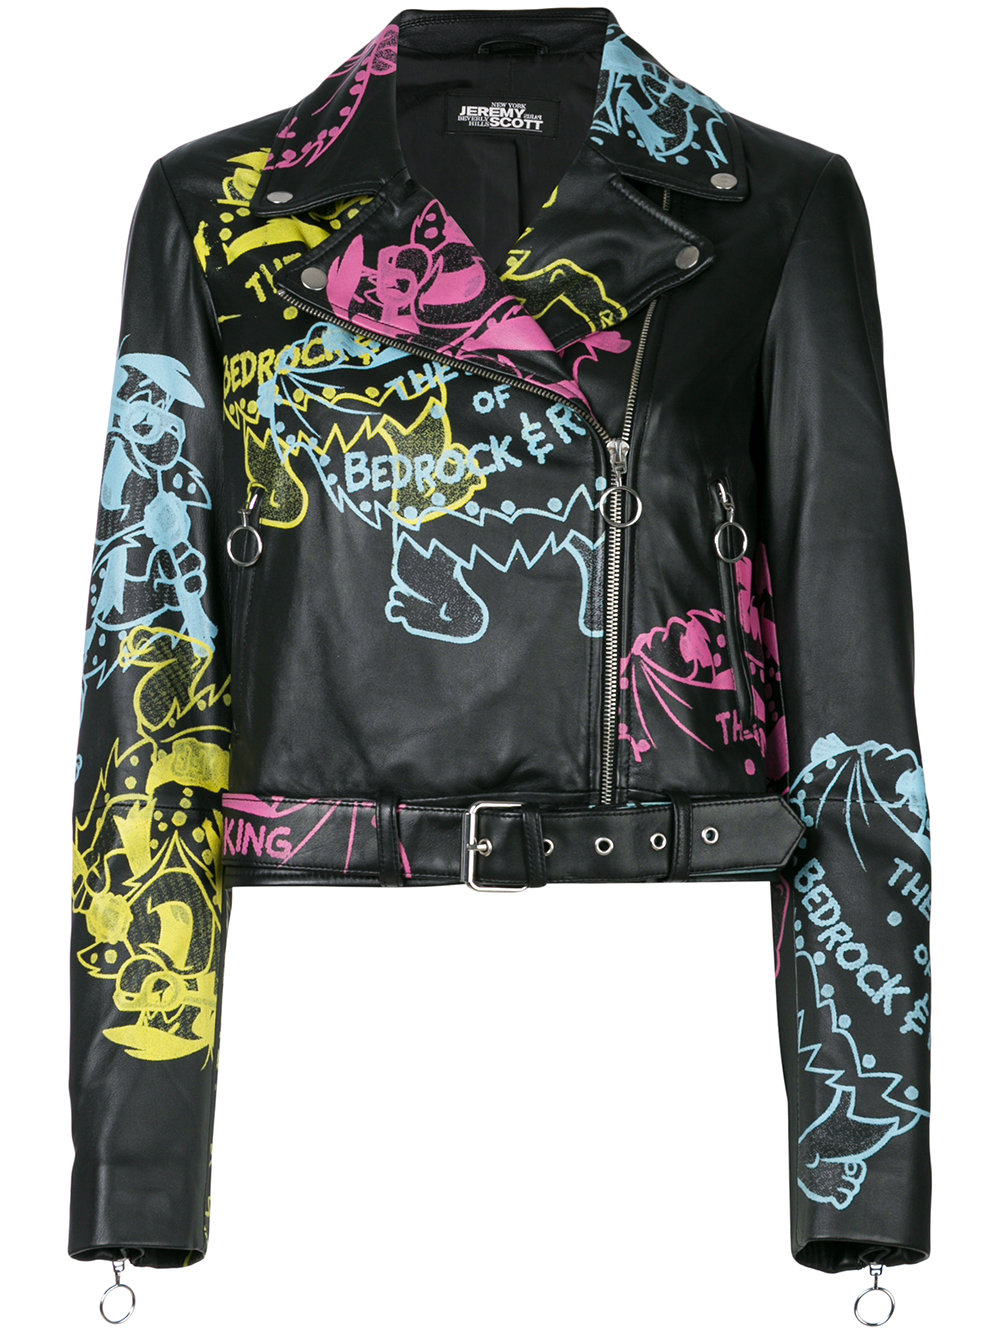 €760 Jeremy Scott, farfetch.com